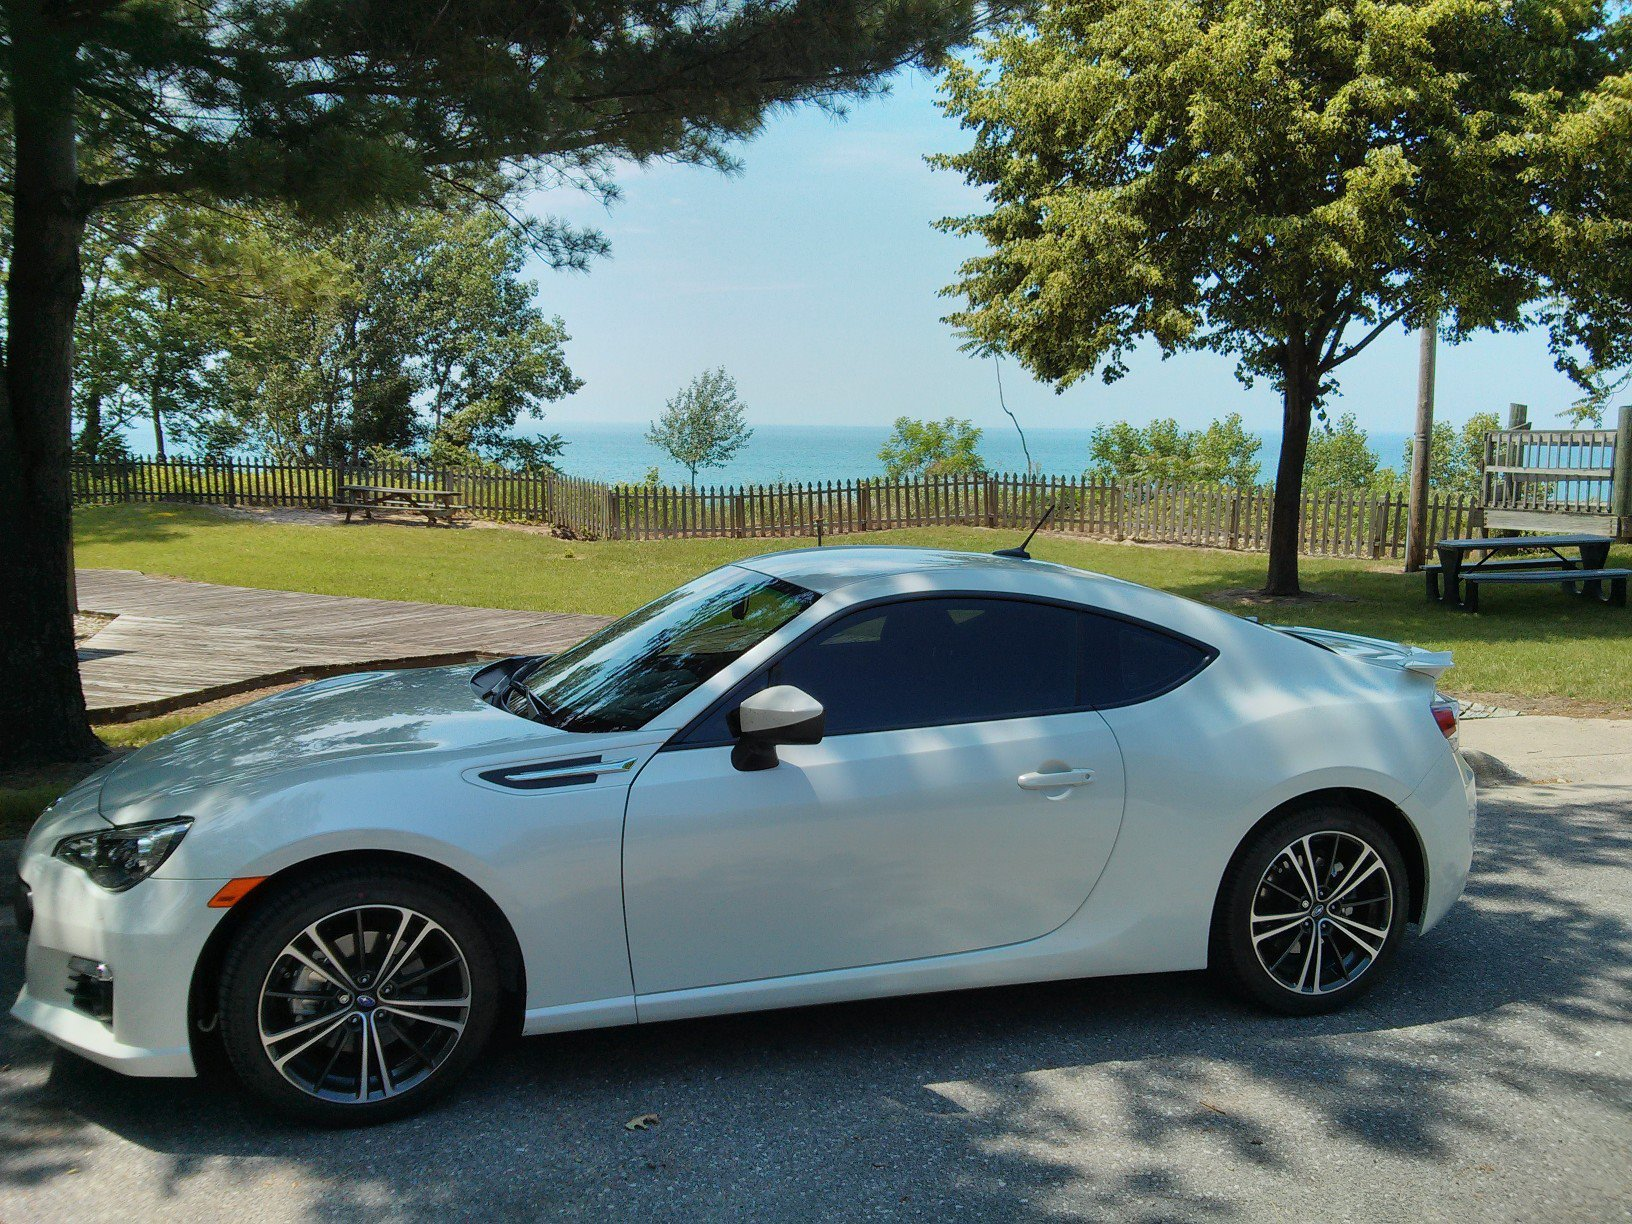 BRZ at Lake Michigan